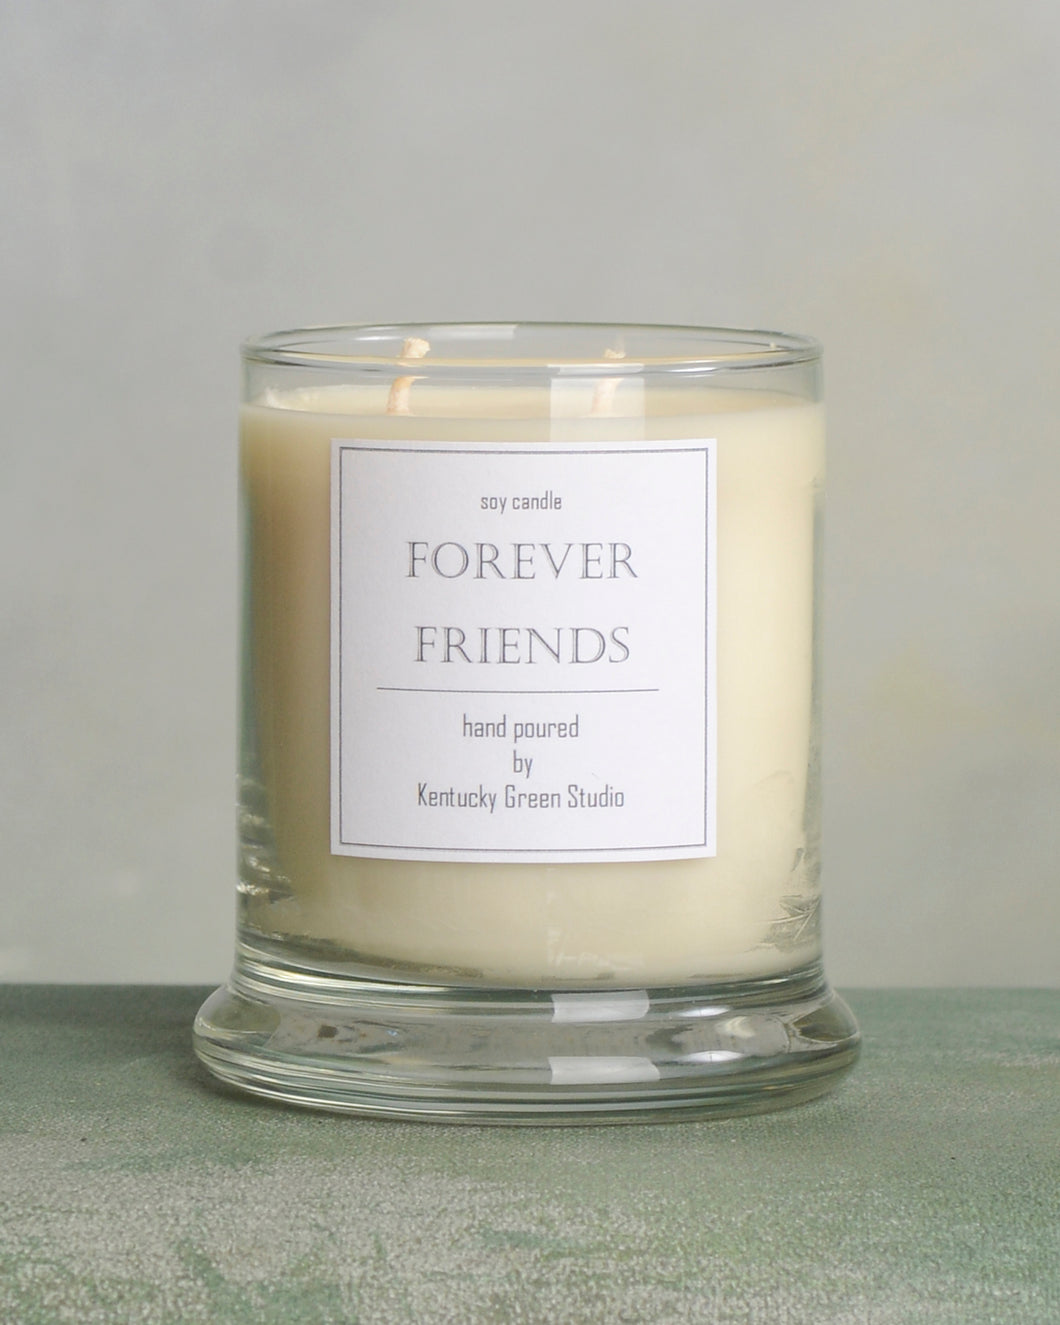 Forever Friends Soy Candles made in Lexington, Kentucky (KY)